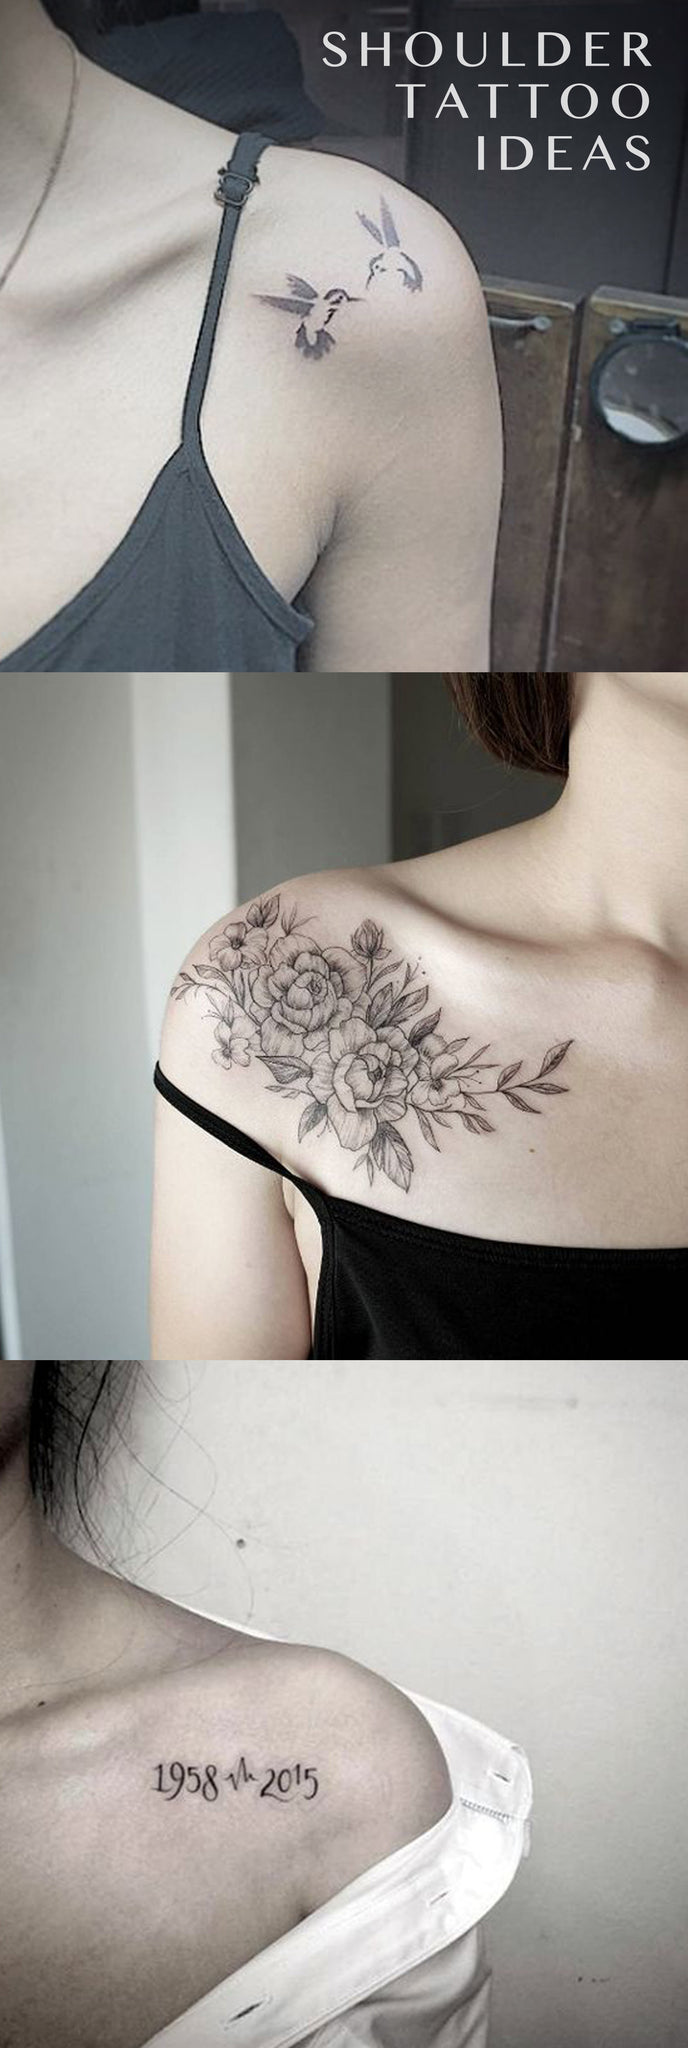 30 Of The Most Popular Shoulder Tattoo Ideas For Women Mybodiart